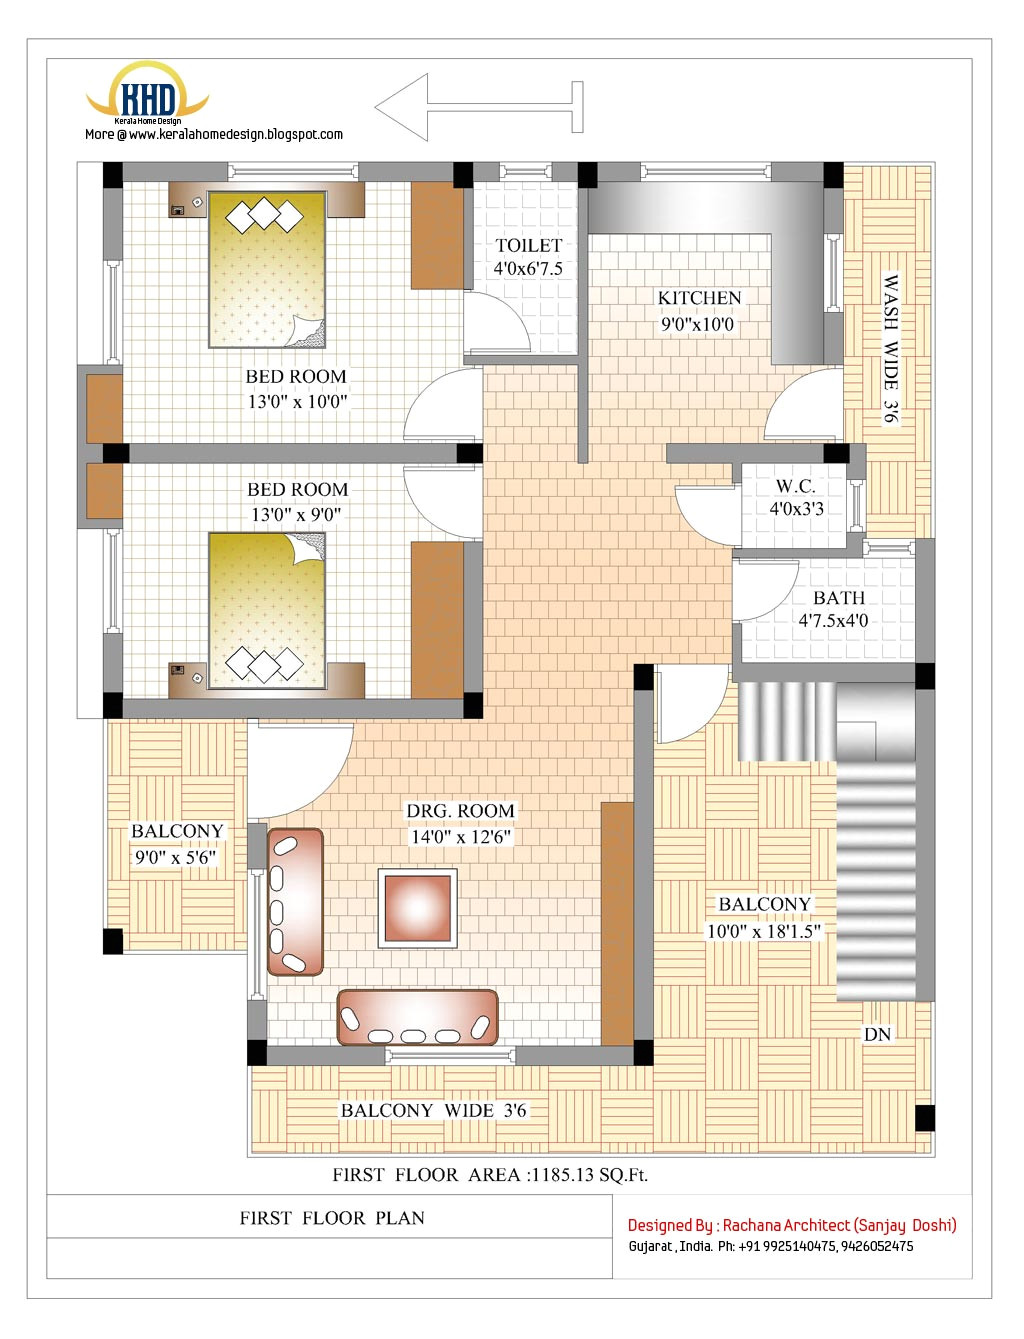 2370 sqft indian style home deisgn more